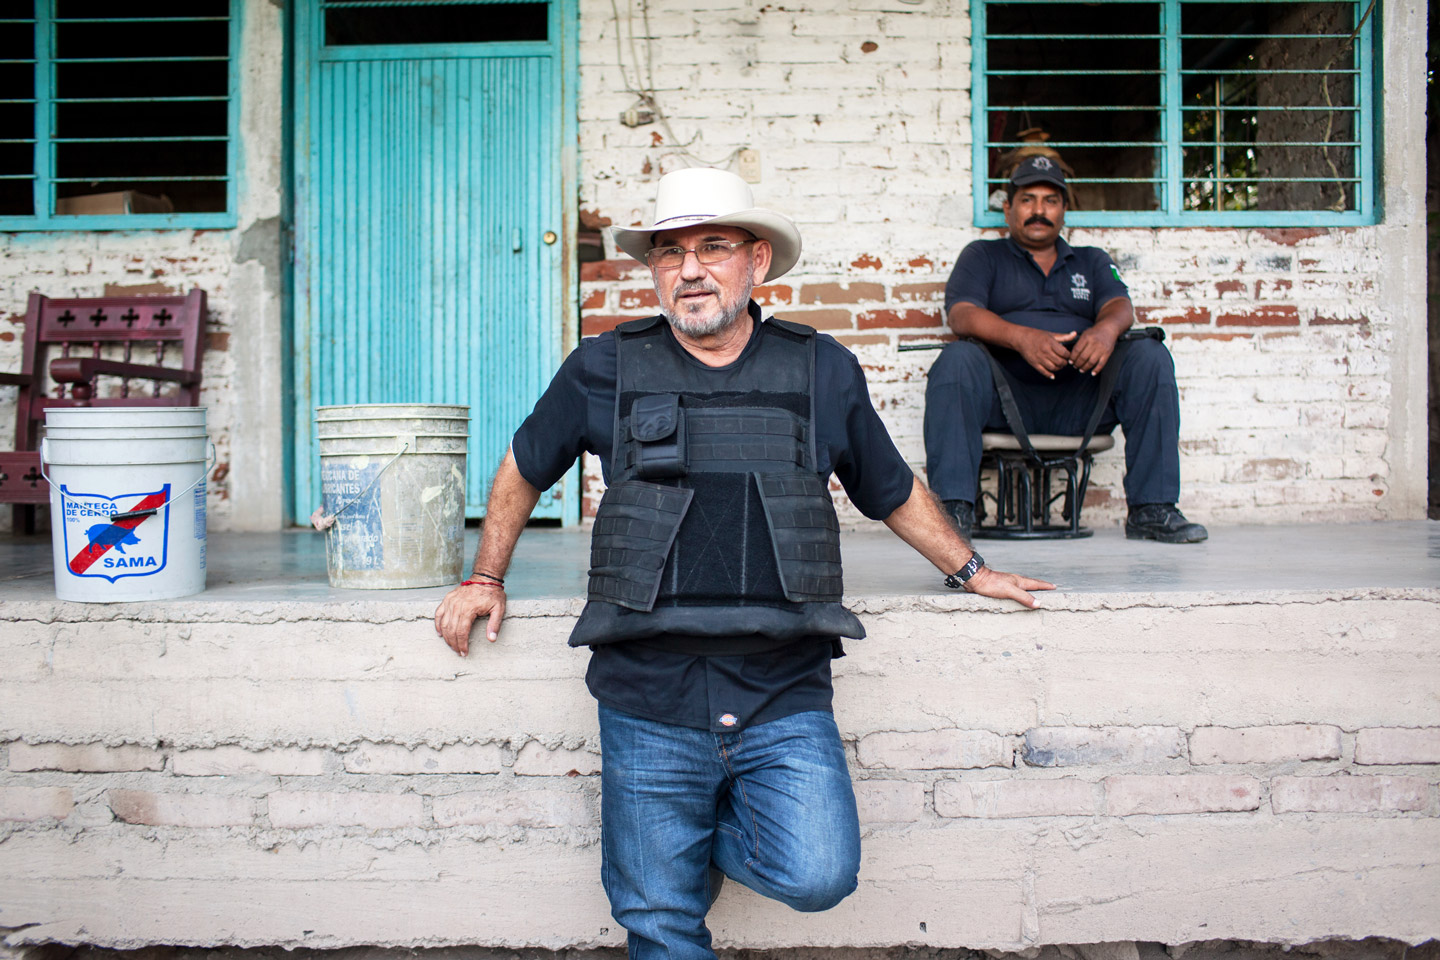 "Hipolito Mora rests at his families lime ranch in La Ruana, Michoacán, Mexico, Tuesday, December 15, 2015. Hipolito Mora was one of the original founder of the autodefensa movement, which saw vigilantes spread across the state of Michoacán and drive out the cartel group the 'Knights of Templar'. Since the uprising began in 2013, other criminal groups have filled the space of the previous cartel and many look at the autodefensa movement as a failure. Mora has had many challenges over the last three years, including being sent to jail twice and having his son killed in a shootout Dec. 16, 2014 during a shootout with a rival group. This ranch is a very important place for Mora. ""This is where I expect to die"" said Mora, motioning to the hills surrounding the ranch, which would make for a great spot for a shooter to hide. ""My son and I had plans to build up the house and make this out place, it was out dream, but that was before."" (Brett Gundlock/Boreal Collective)"